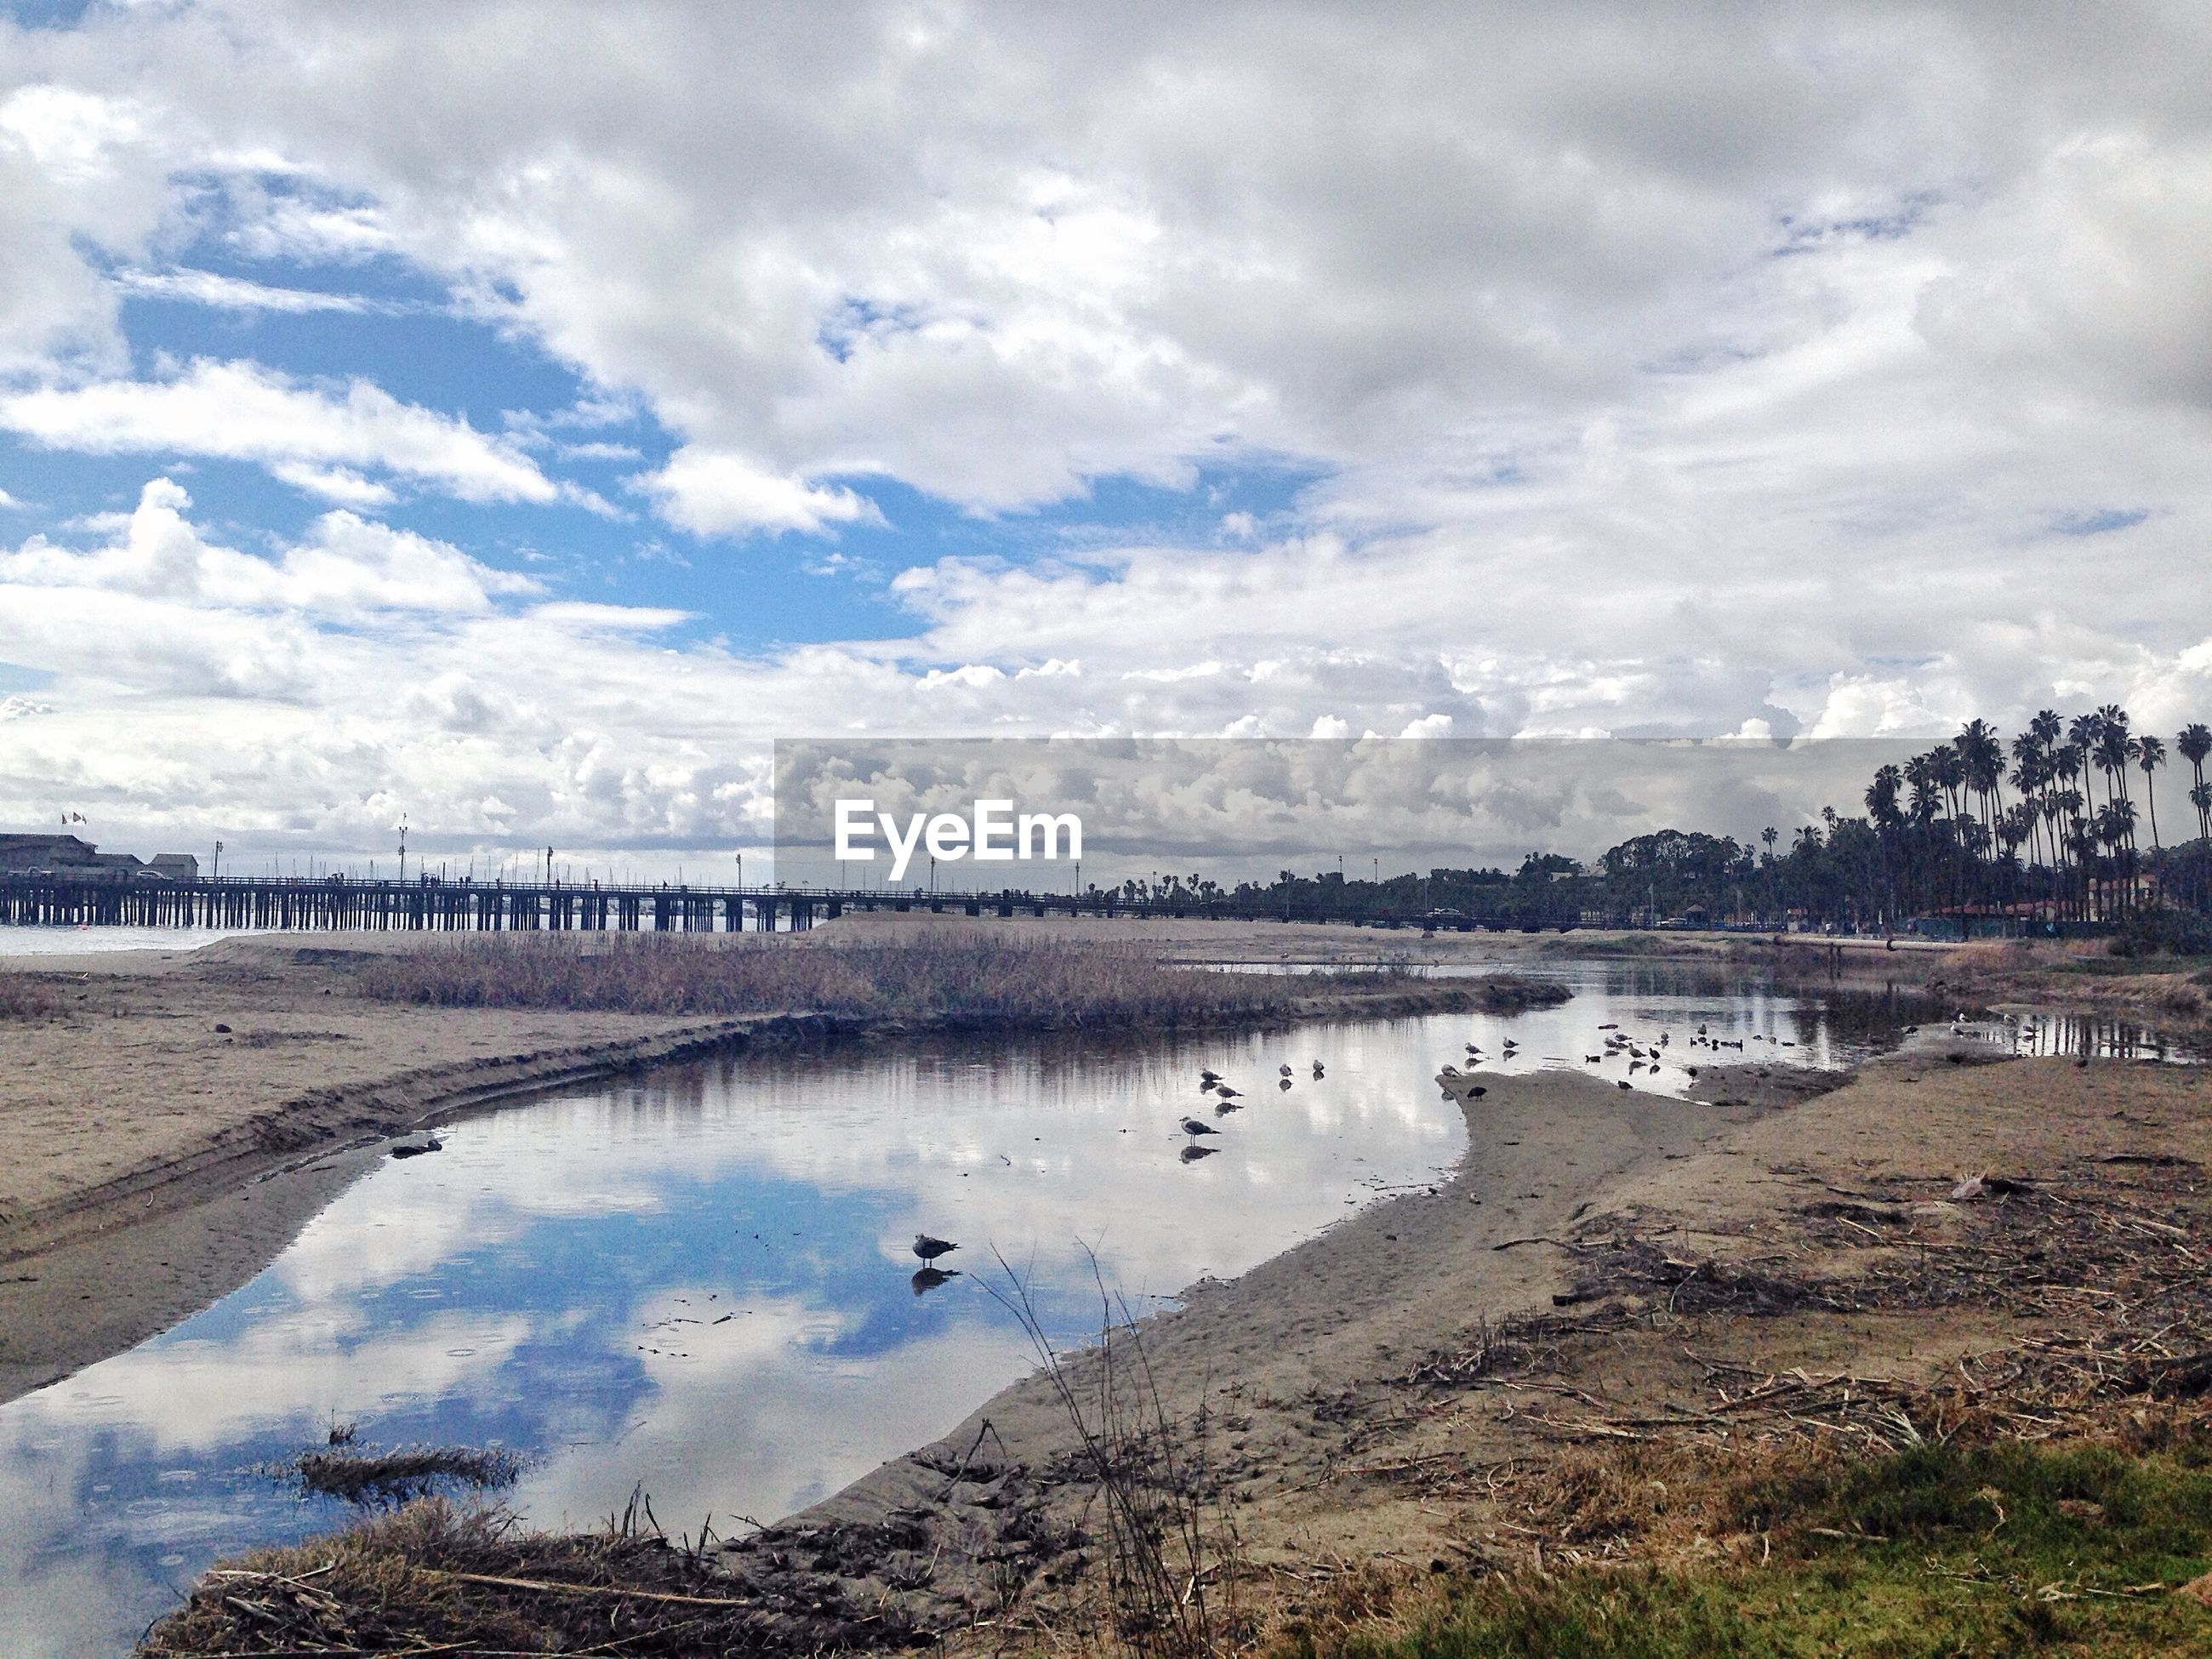 water, sky, bird, cloud - sky, animal themes, cloudy, nature, tranquility, tranquil scene, scenics, animals in the wild, beauty in nature, wildlife, beach, lake, shore, cloud, day, river